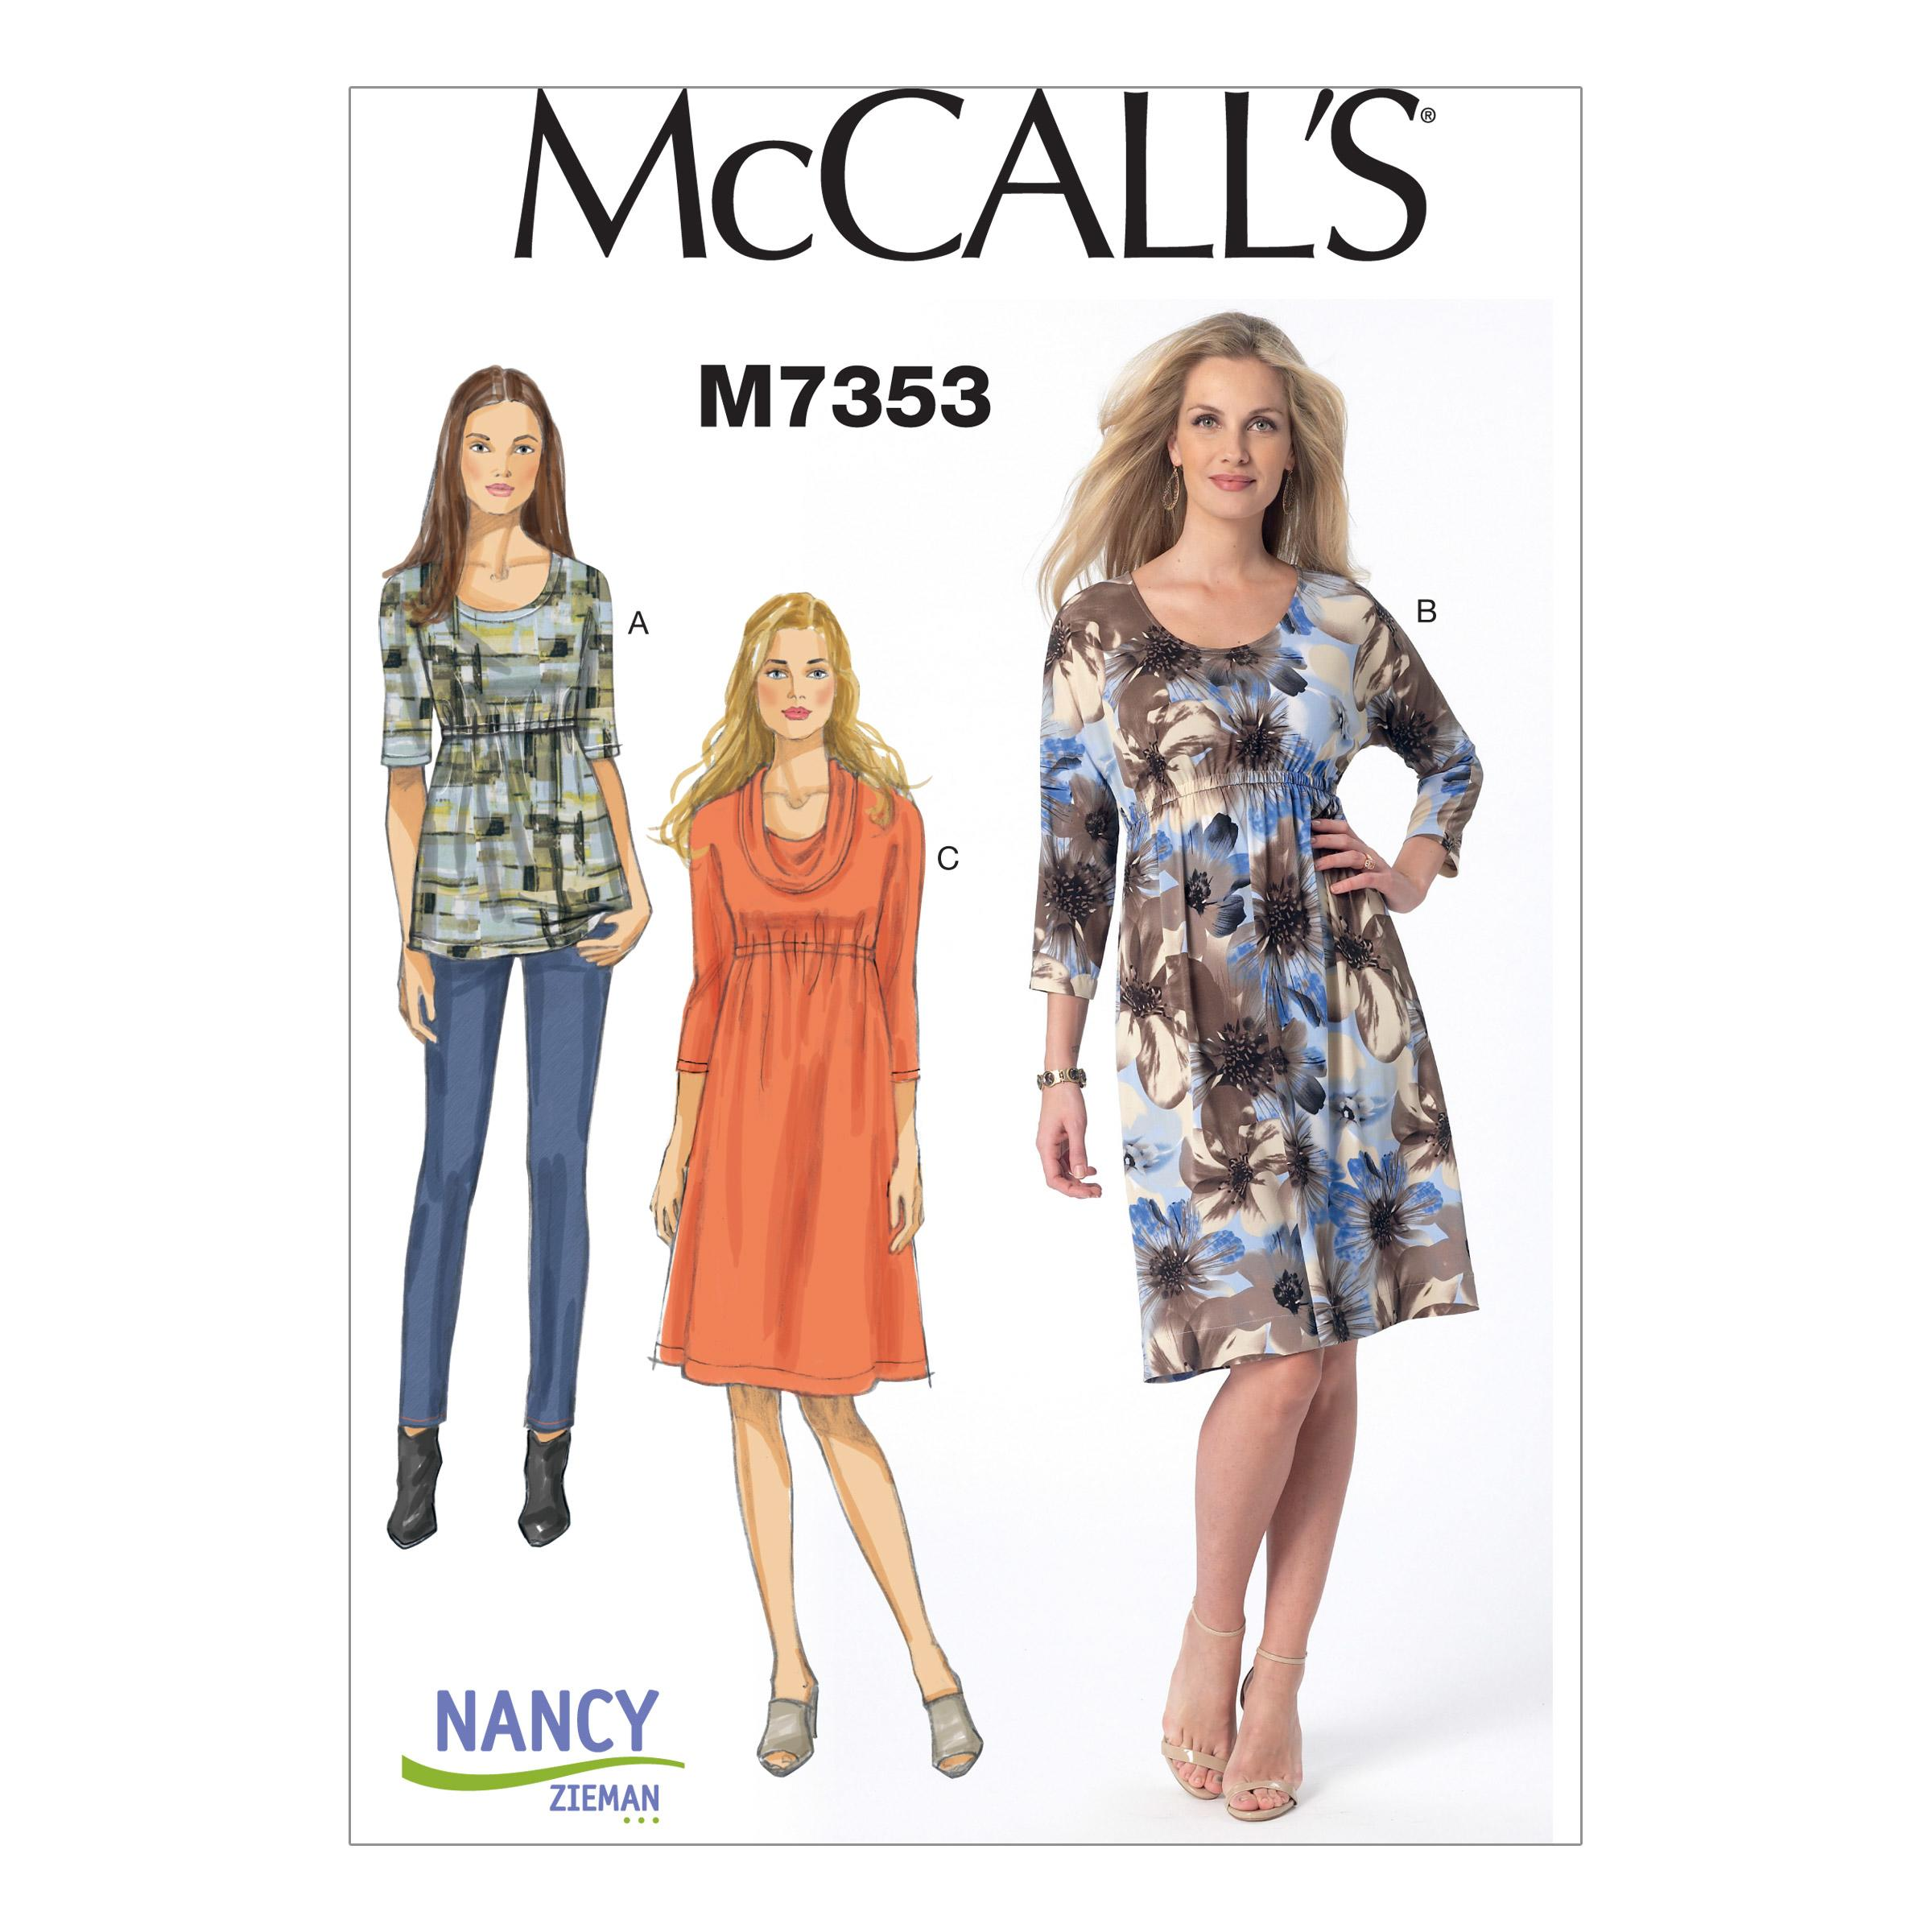 McCalls M7353 Dresses, Tops/Tunics